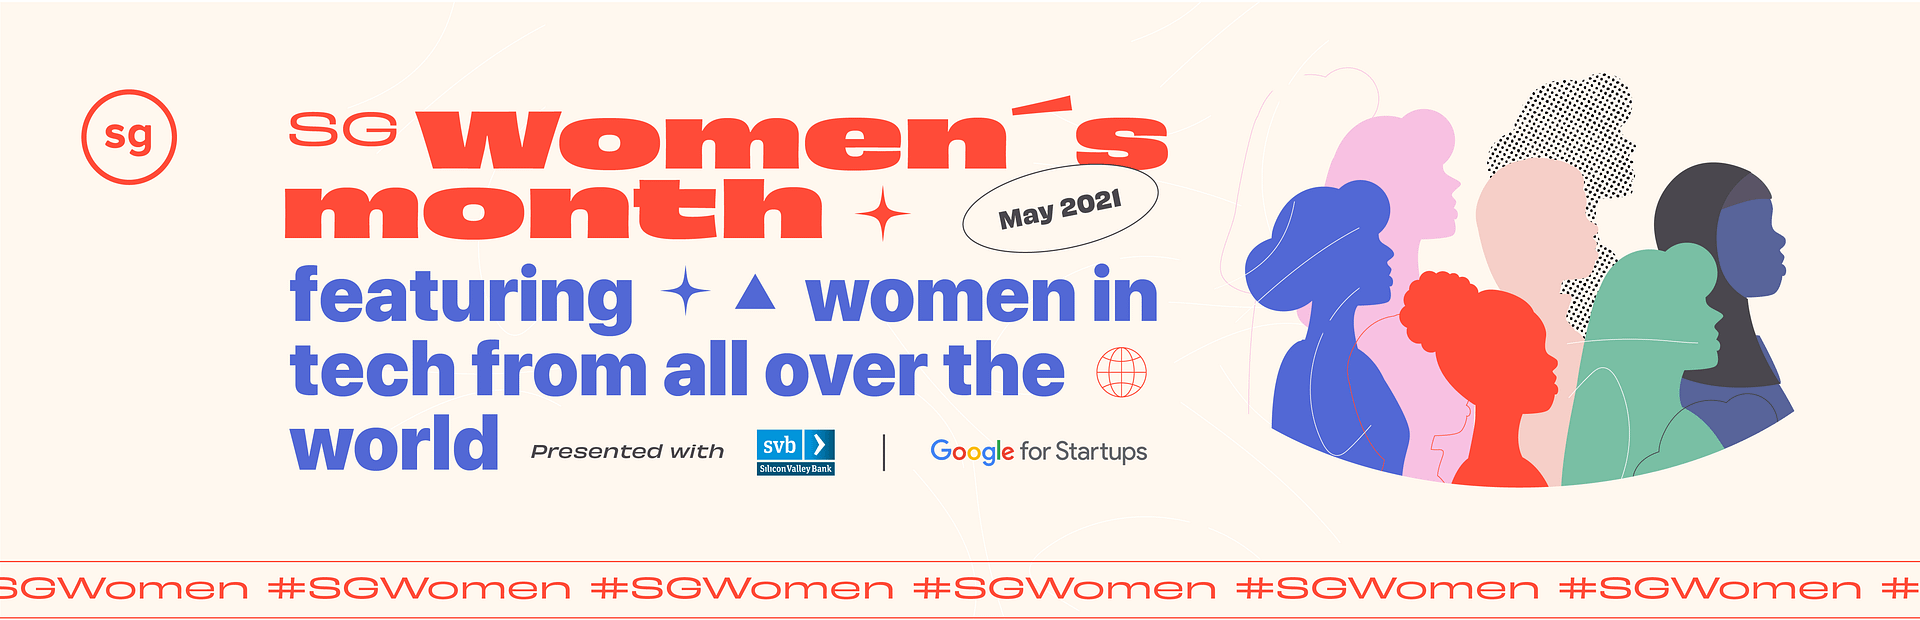 SG Women's Month presented with Silicon Valley Bank and Google for Startups